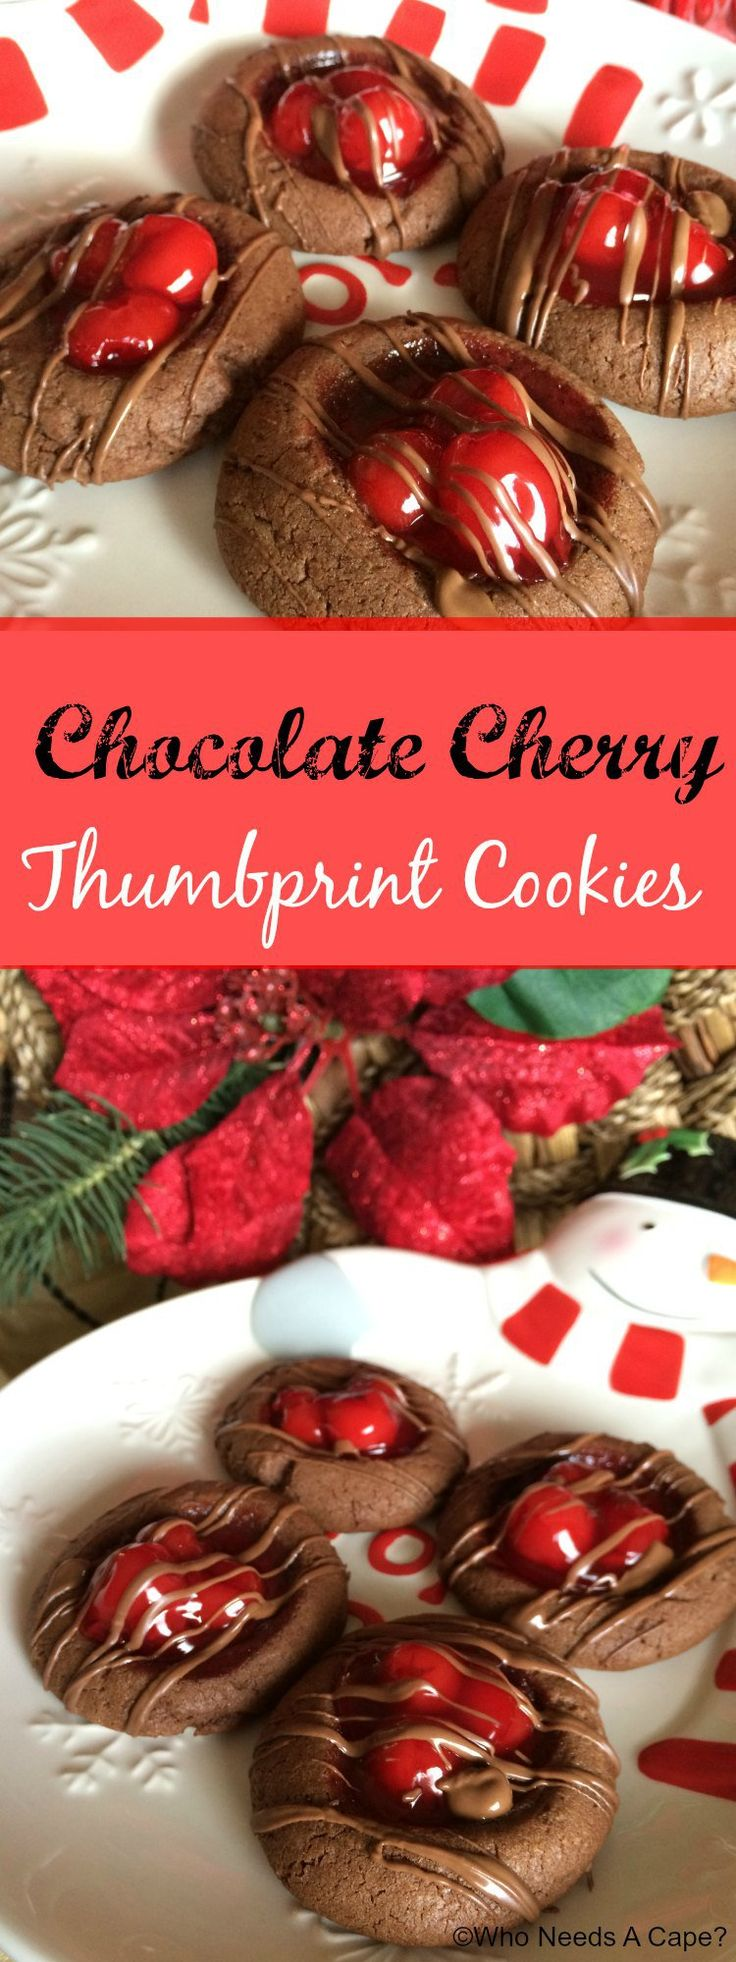 Chocolate Cherry Thumbprint Cookies   Who Needs A Cape? #BakethisHolidaySpecial with this amazing cookies that will add a dazzle to your holiday cookie tray!